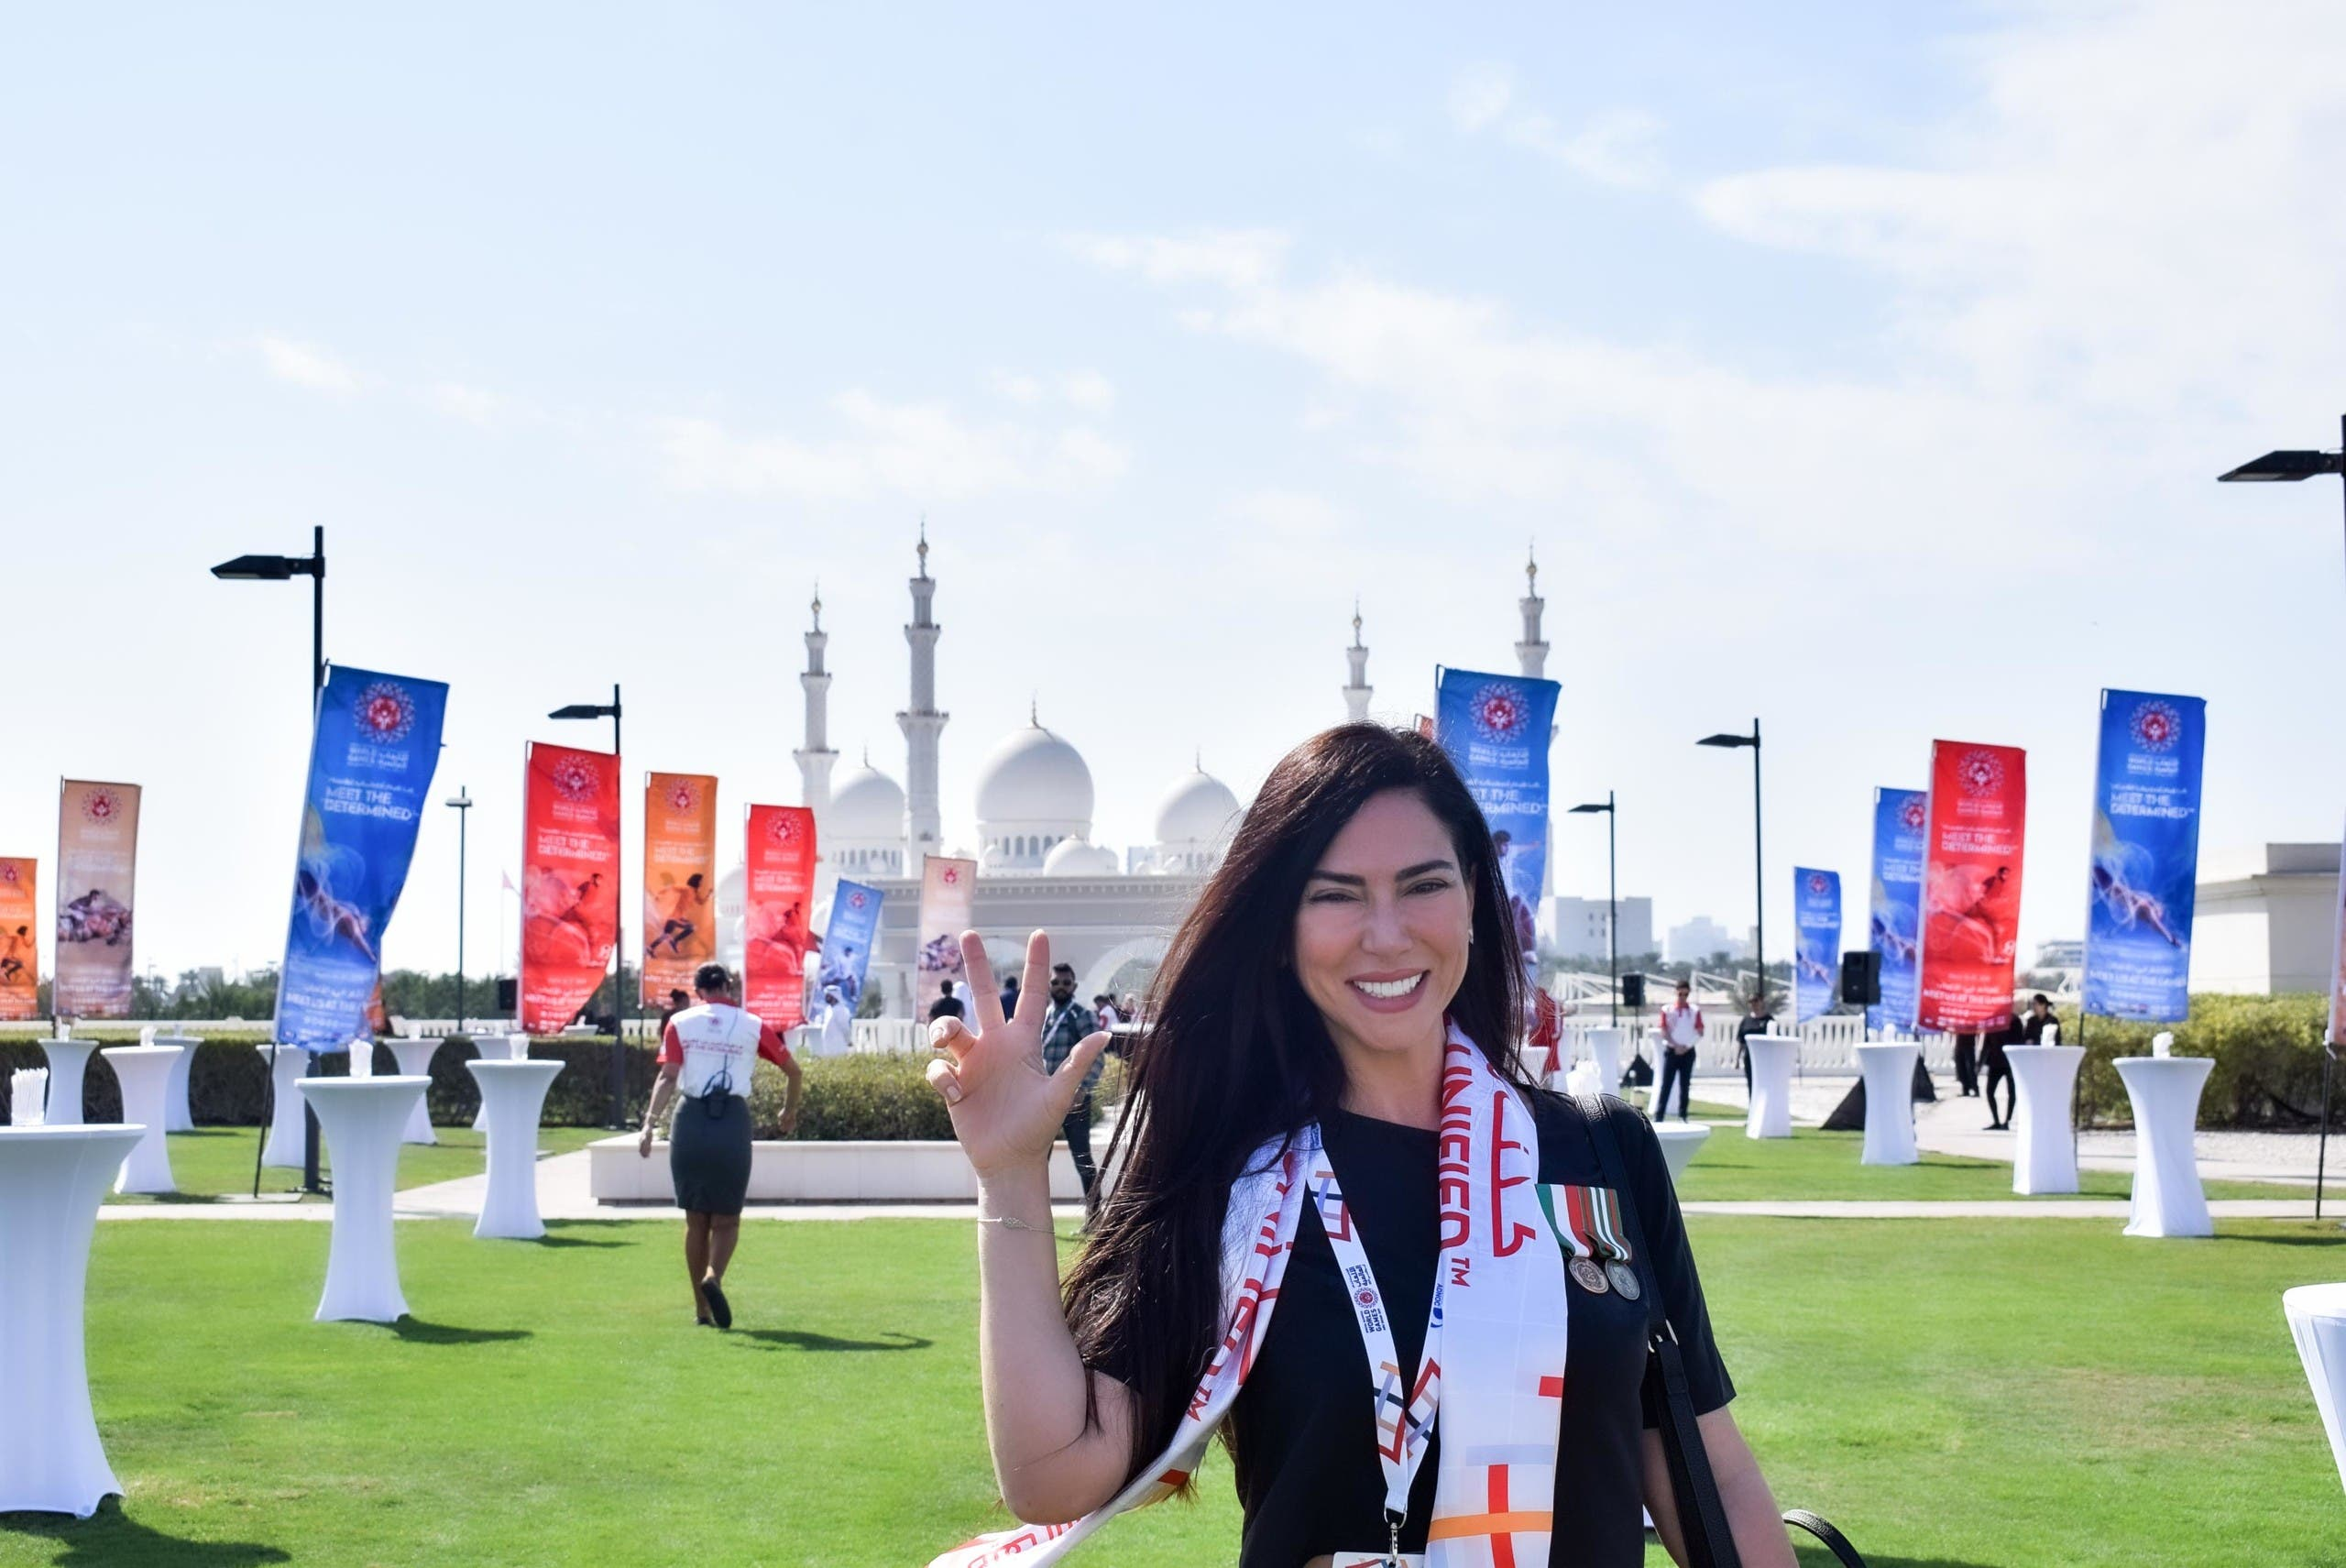 Italian producer Benedetta Paravia during the 2019 Special Olympics, in front of the Sheikh Zayed Grand Mosque in Abu Dhabi. (Supplied)